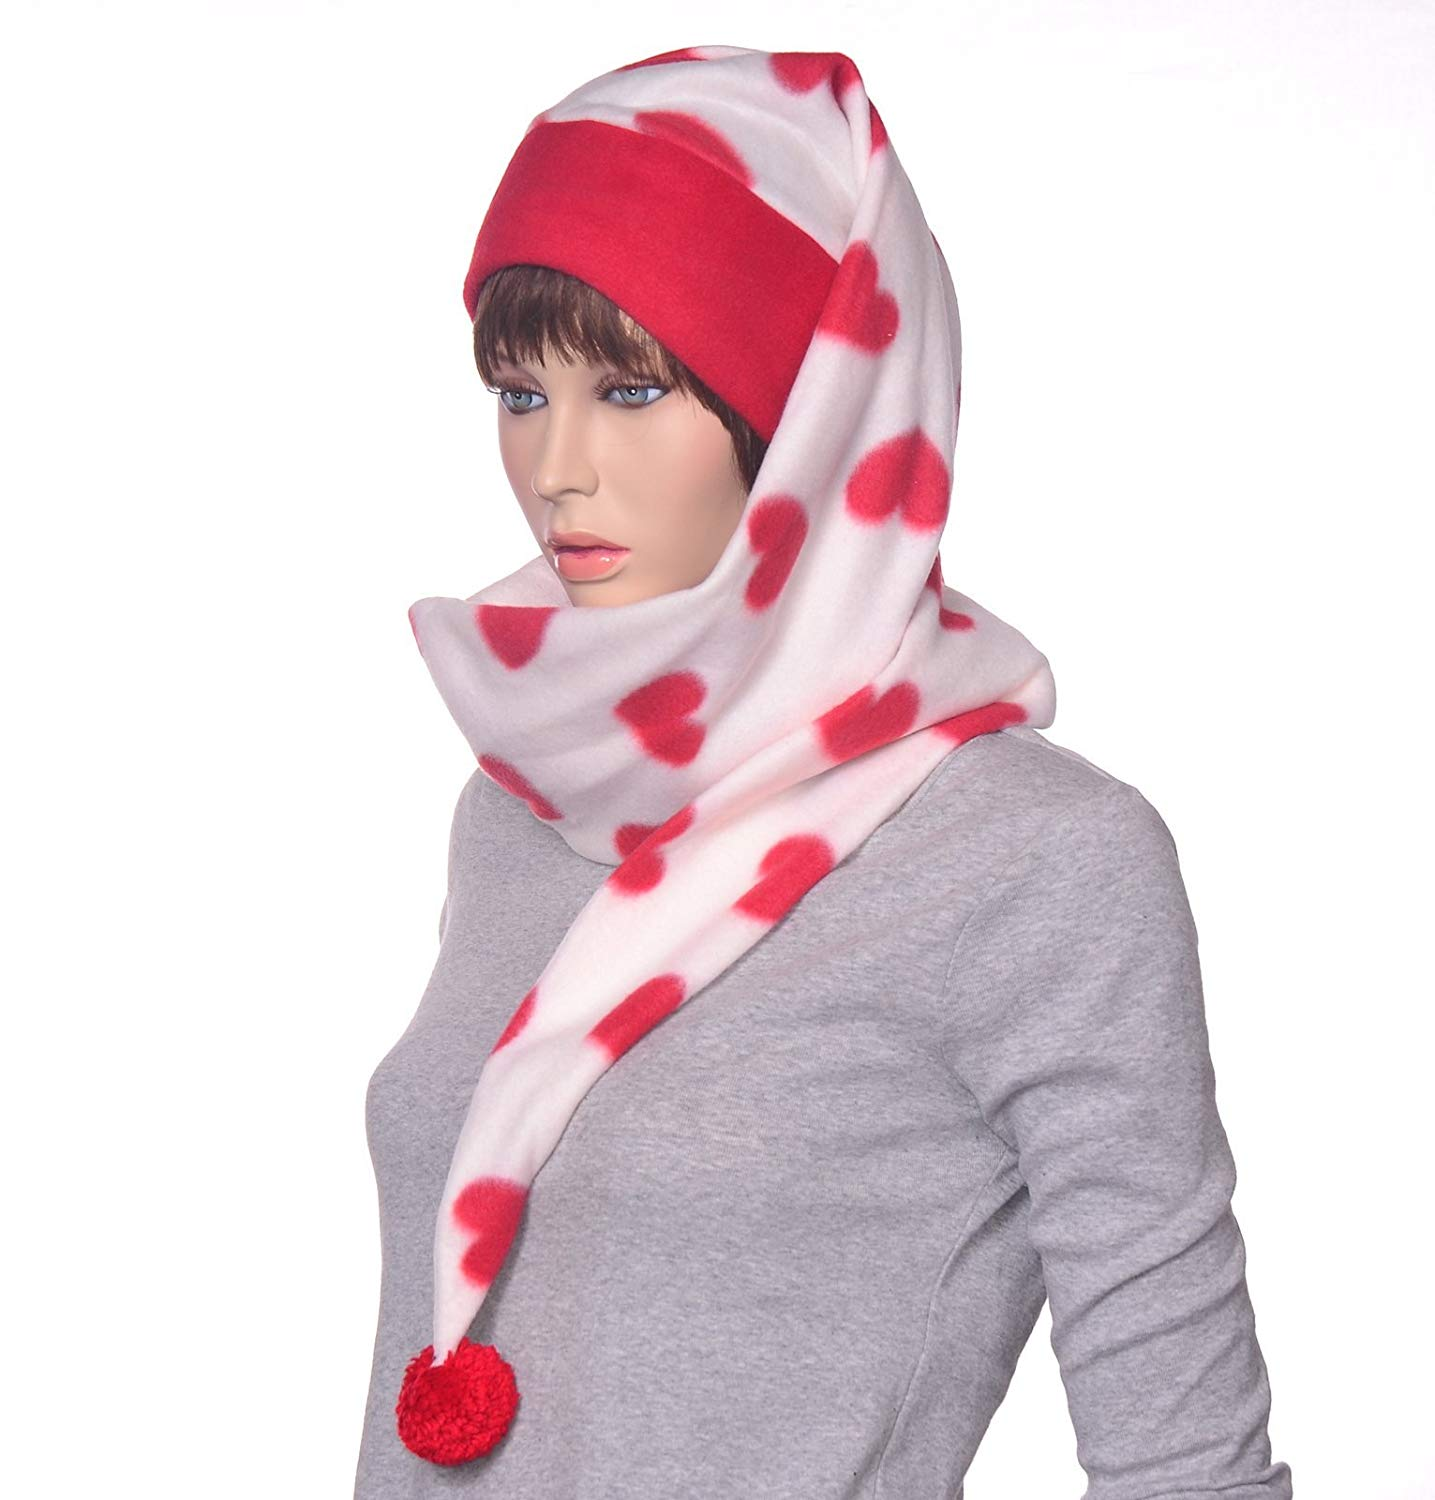 dec7708a768 Get Quotations · Long Wrap Around Stocking Cap Red and White with Hearts